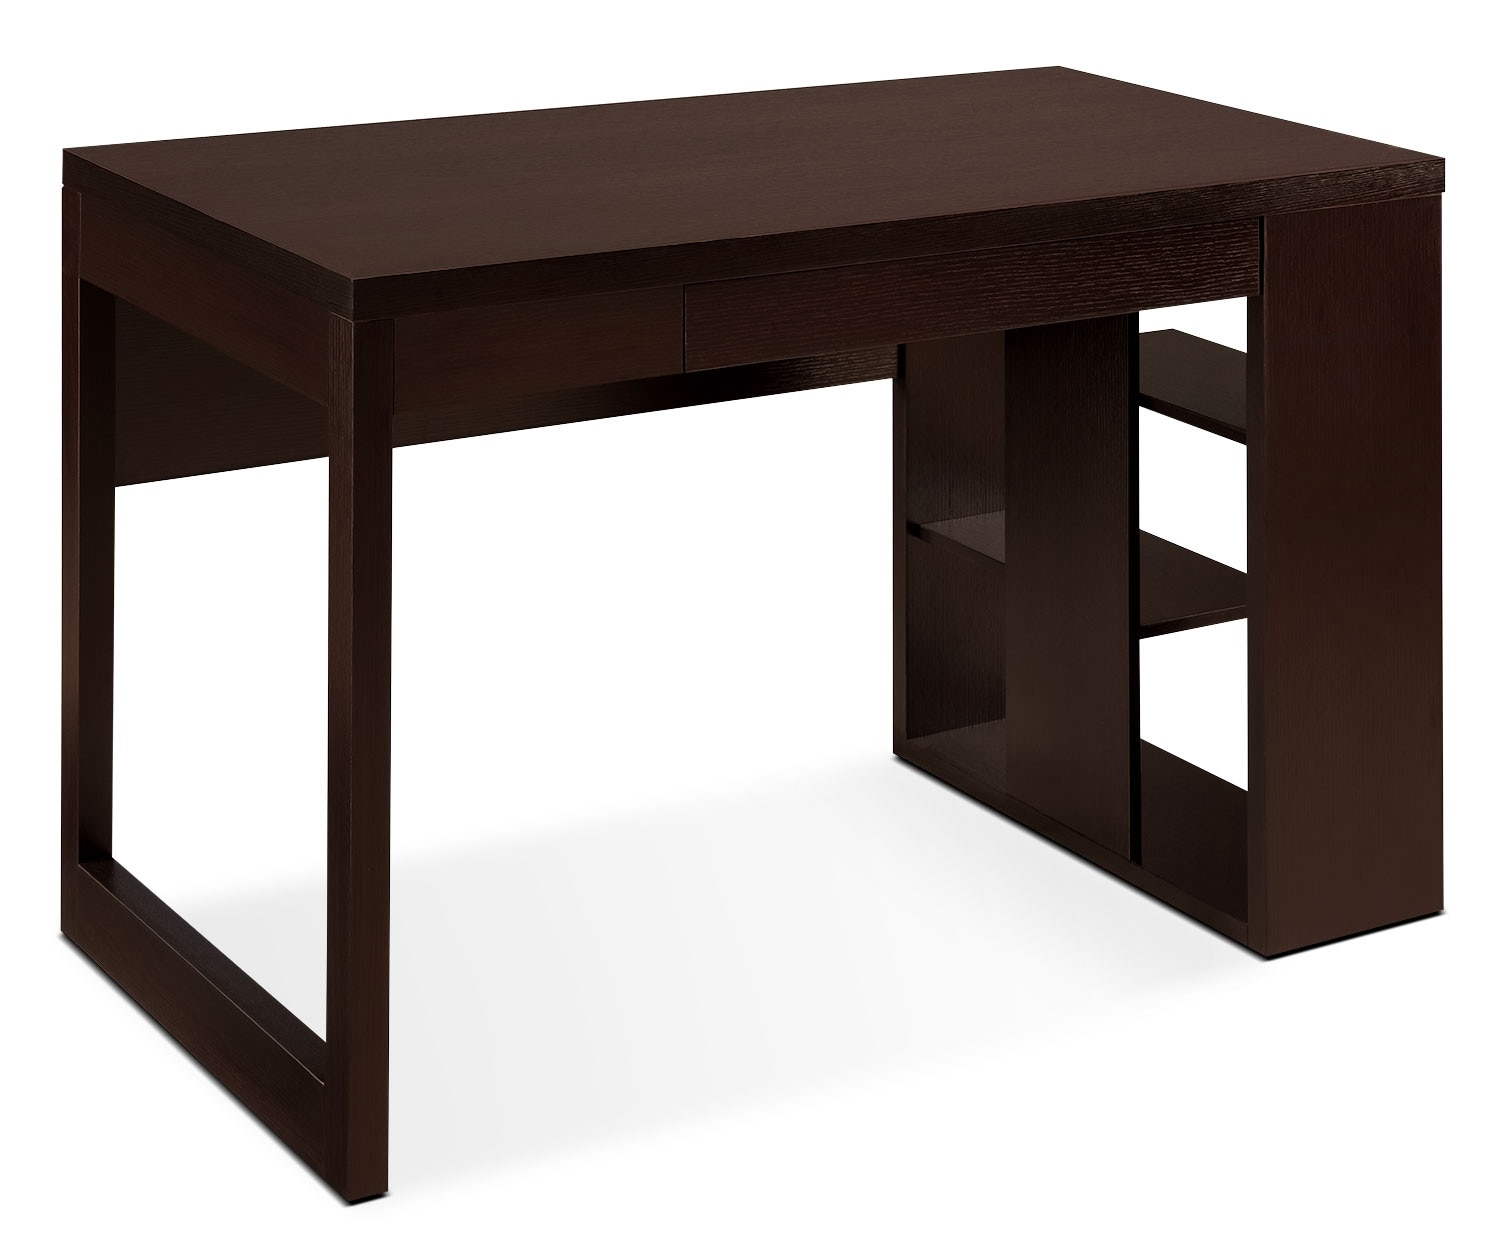 Home Office Furniture - Peyton Desk with Shelves